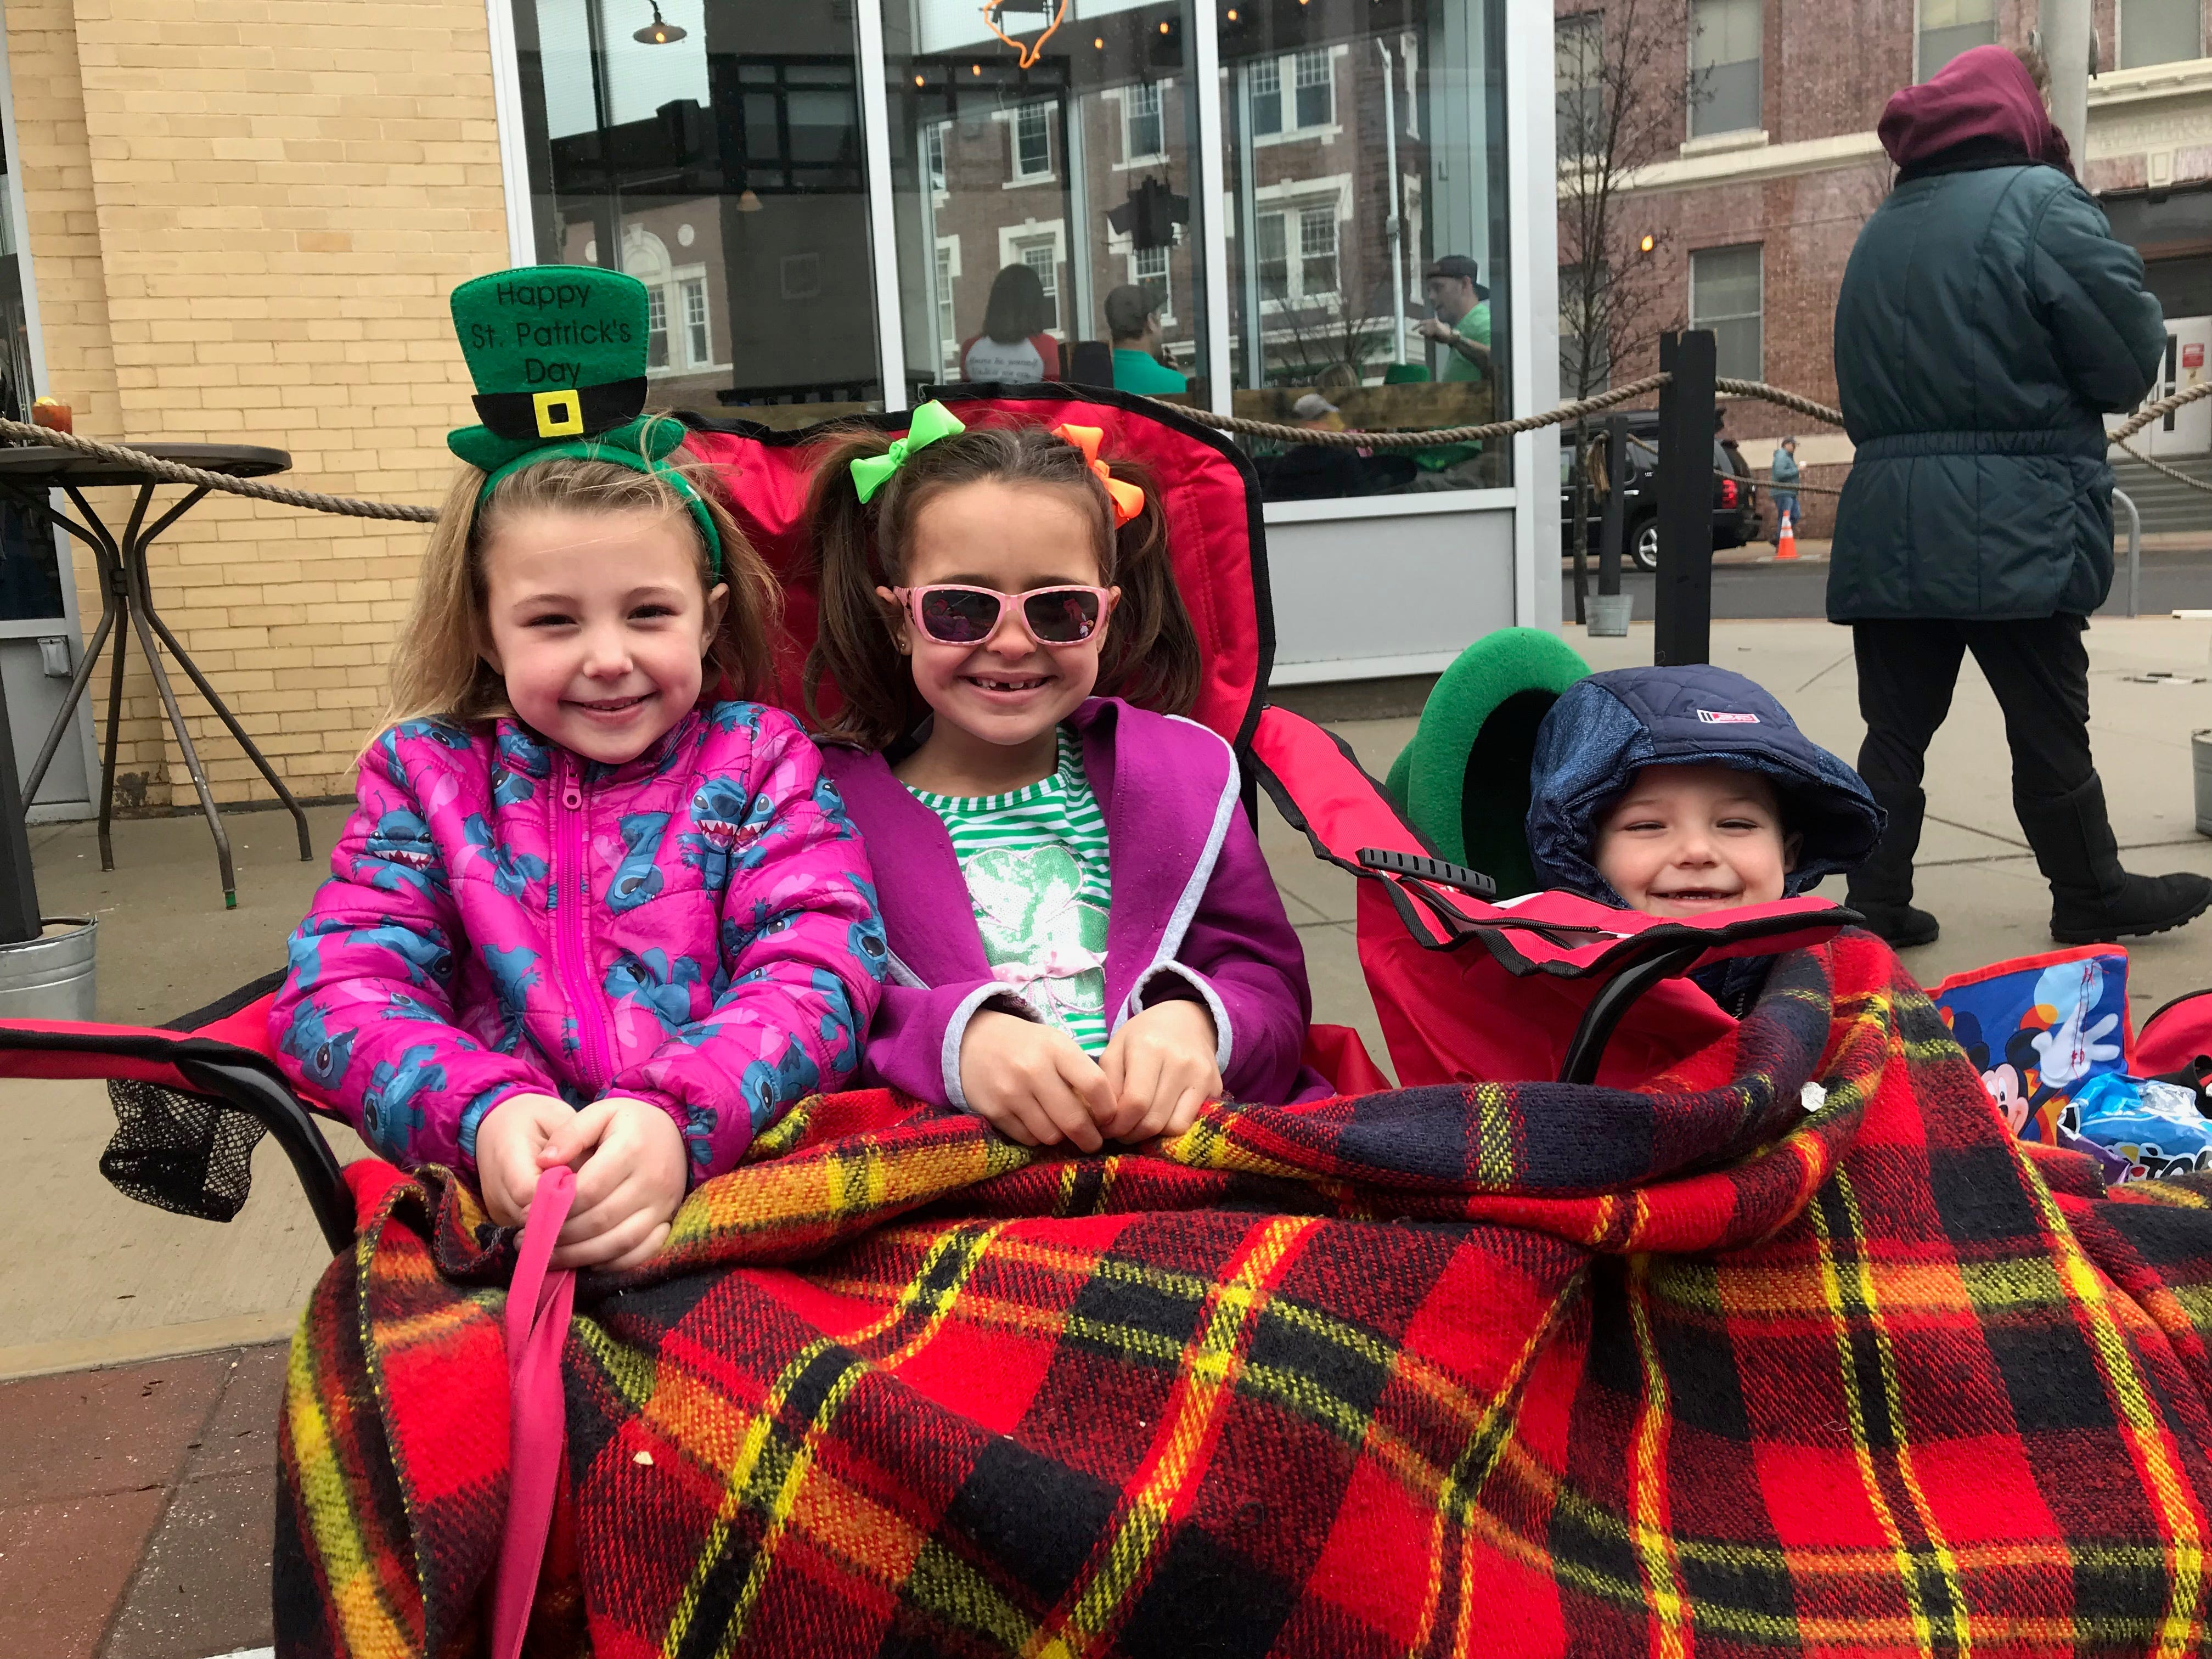 From left: Grace Ratyniak, 6, of Wall; Raeanne Molinelli, 7, of Ocean Township; and Eddie Ratyniak, 4, of Wall wait for the Asbury Park St. Patrick's Day Parade to start on Cookman Avenue.